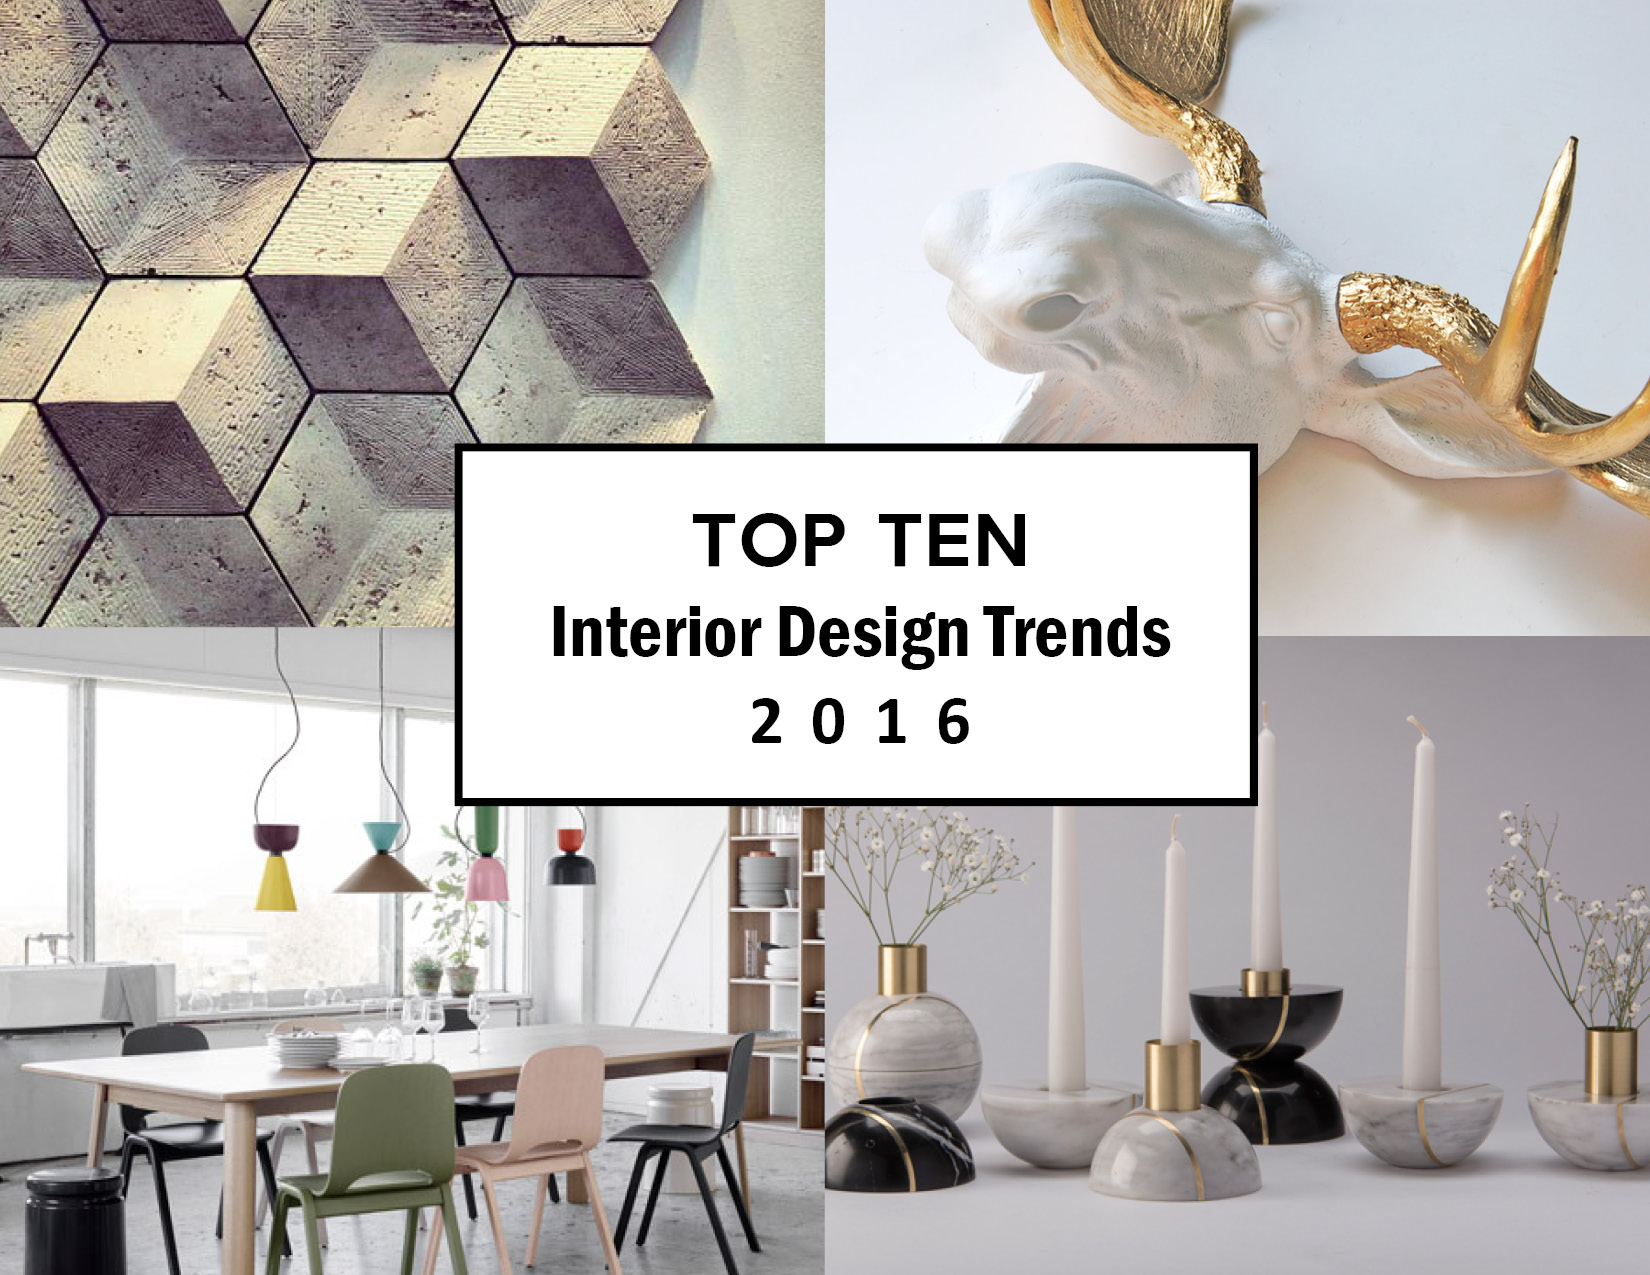 Interior Design Trends 2016